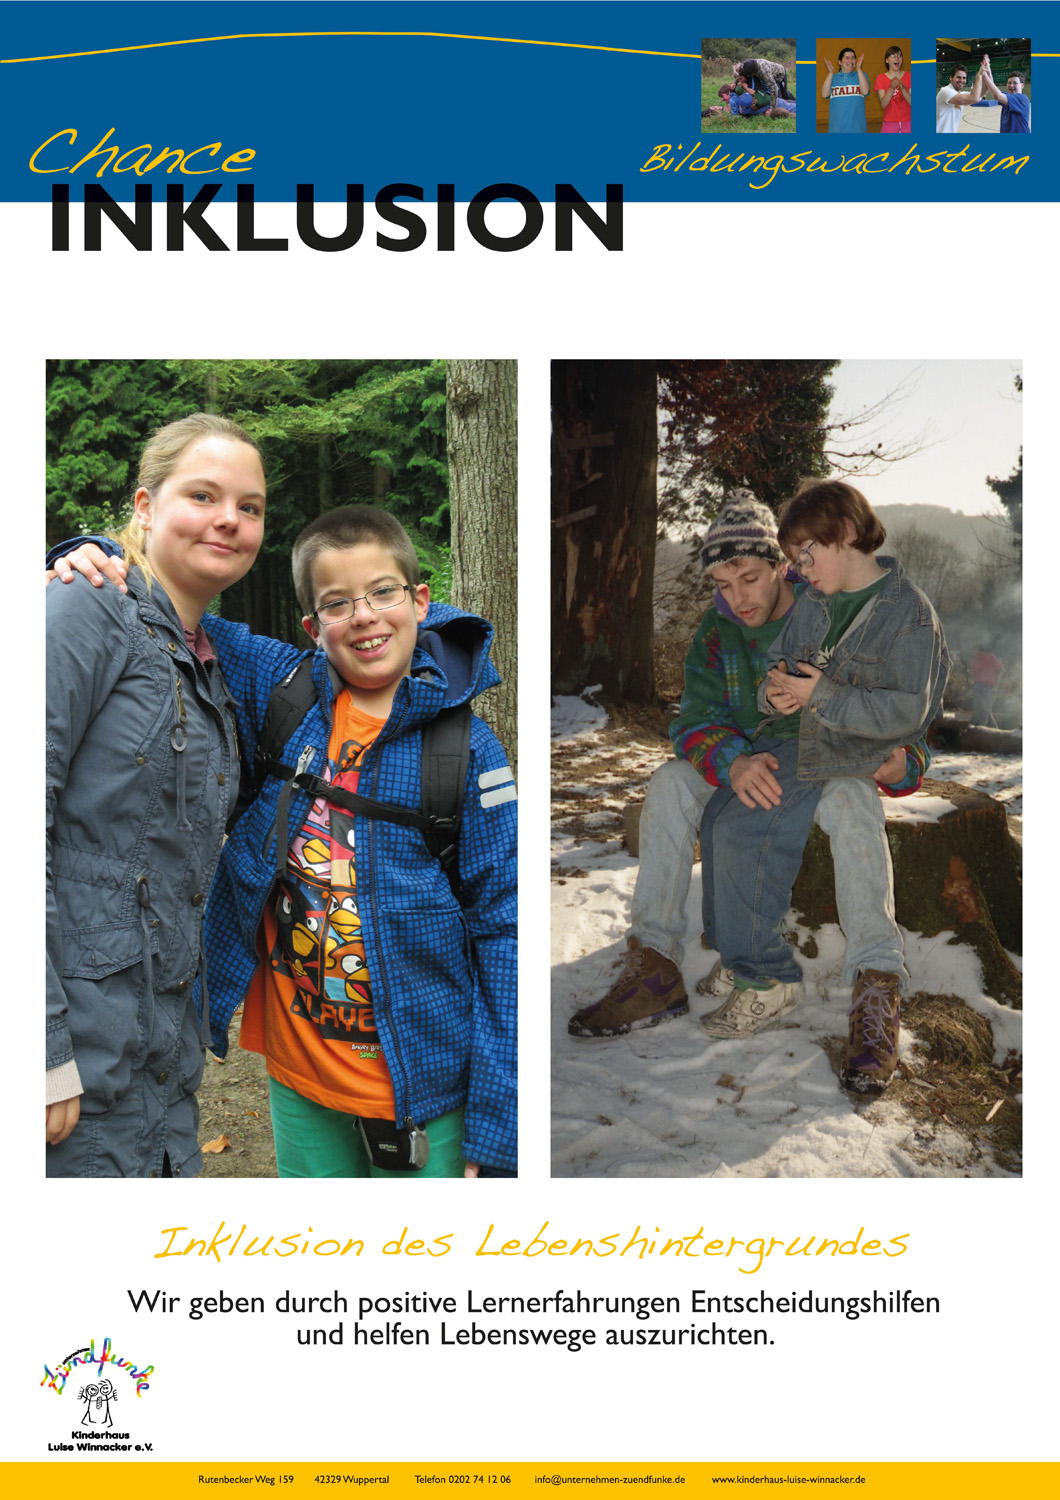 A0 KLW Inclusion 3